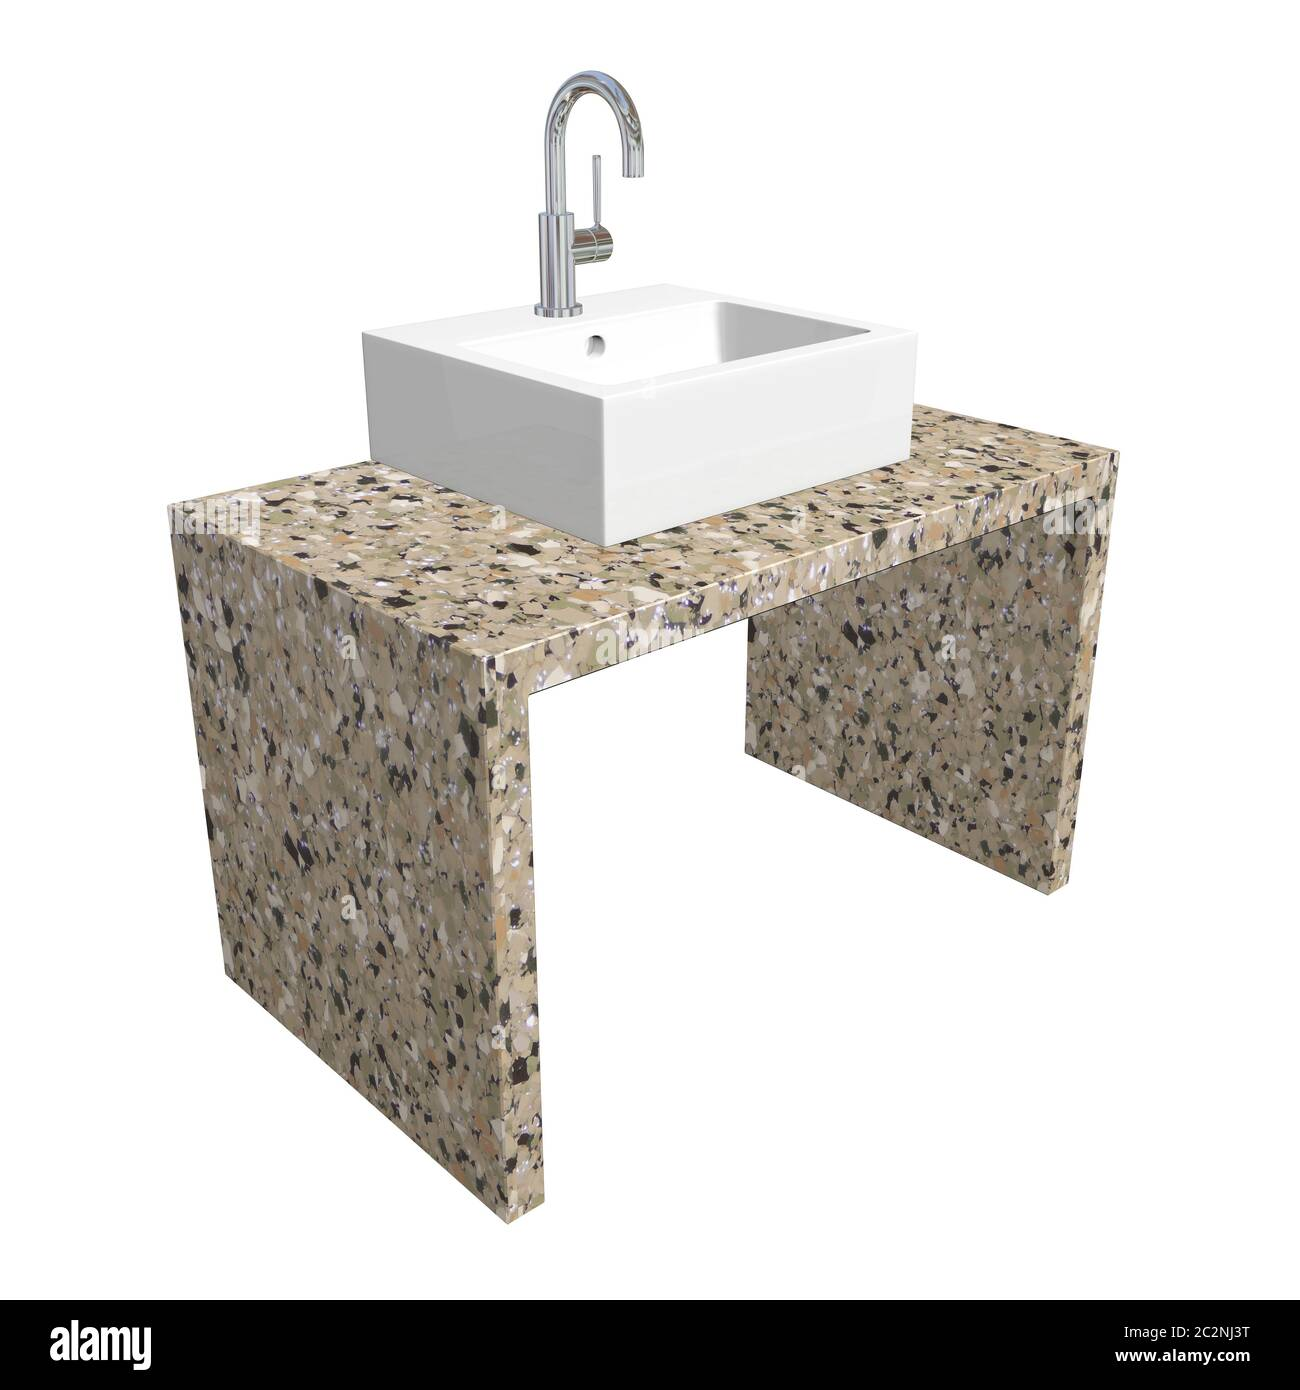 Modern Bathroom Sink Set With Ceramic Or Acrylic Wash Basin Chrome Fixtures And Marble Base 3d Illustration Isolated Against A White Background Stock Photo Alamy